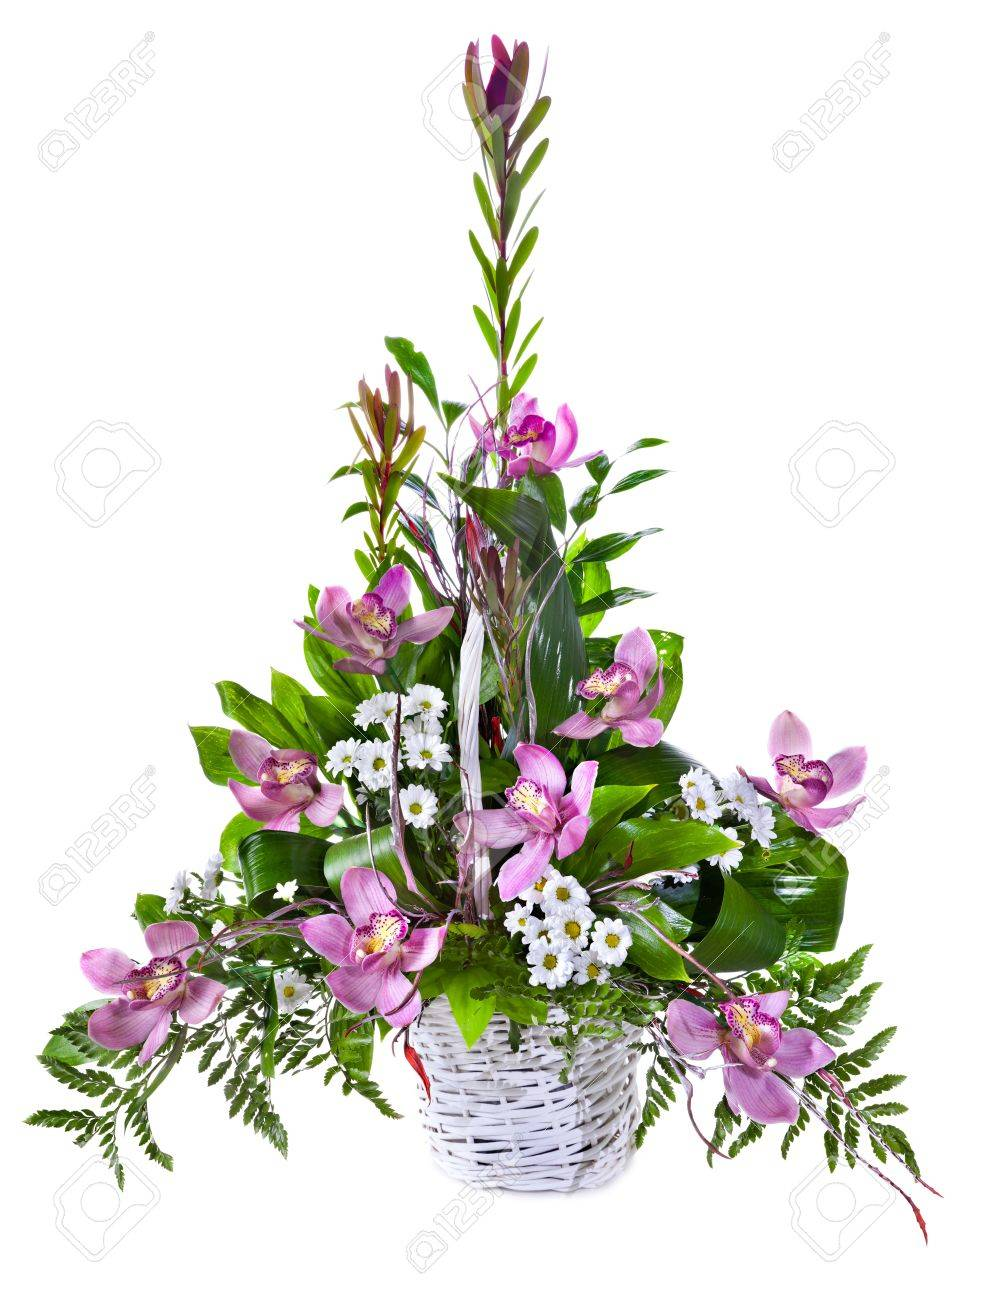 Bright flower bouquet in basket isolated over white background Stock Photo - 13268438